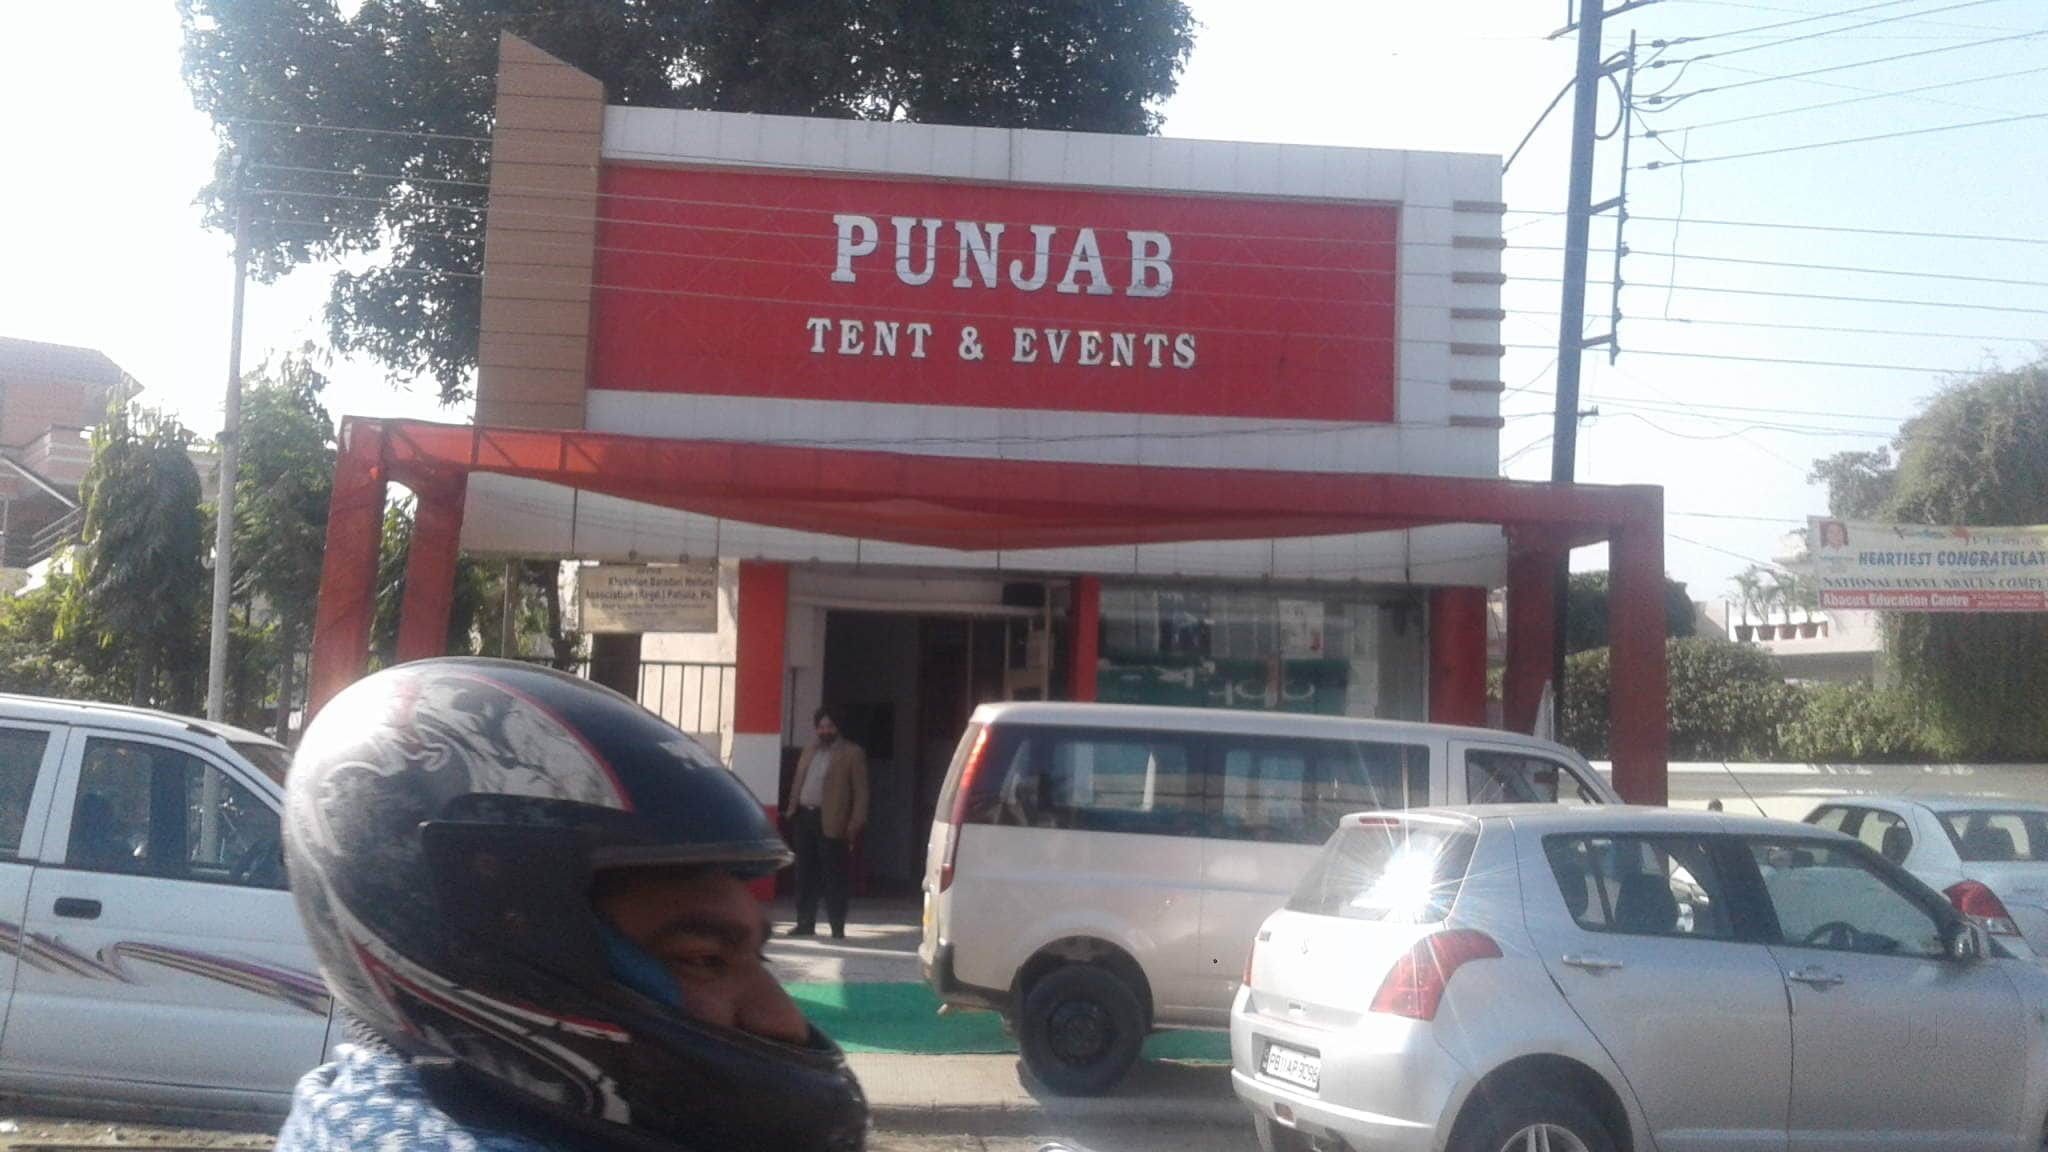 & Punjab Tent u0026 Event - Tent House in Patiala - Justdial